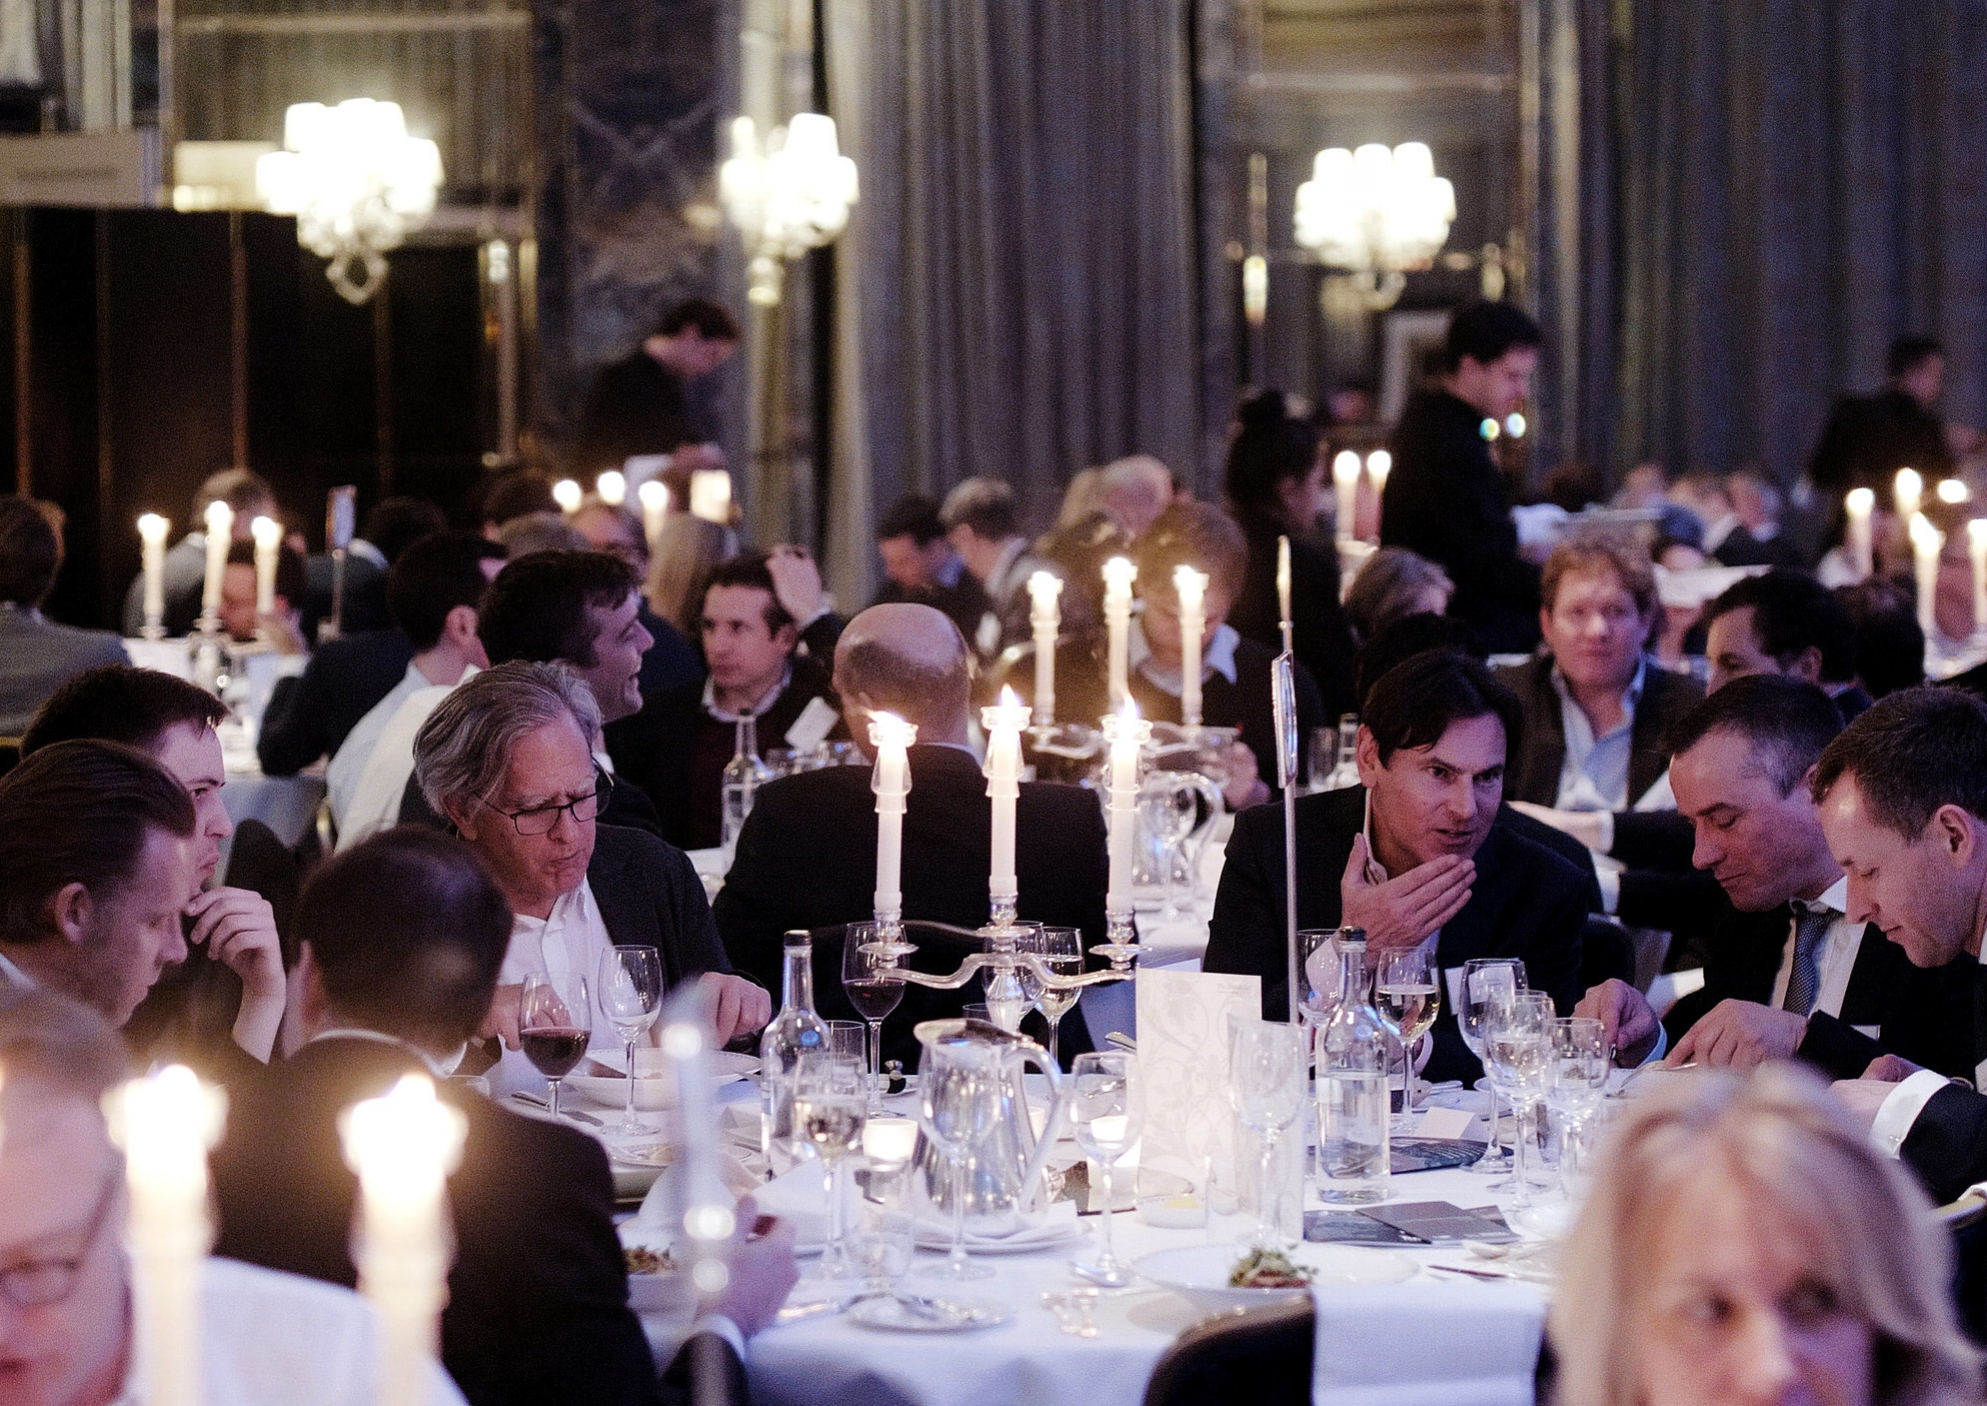 The-Up-Group-Digital-Masters-Dinner-London-Tech-Trends.jpg